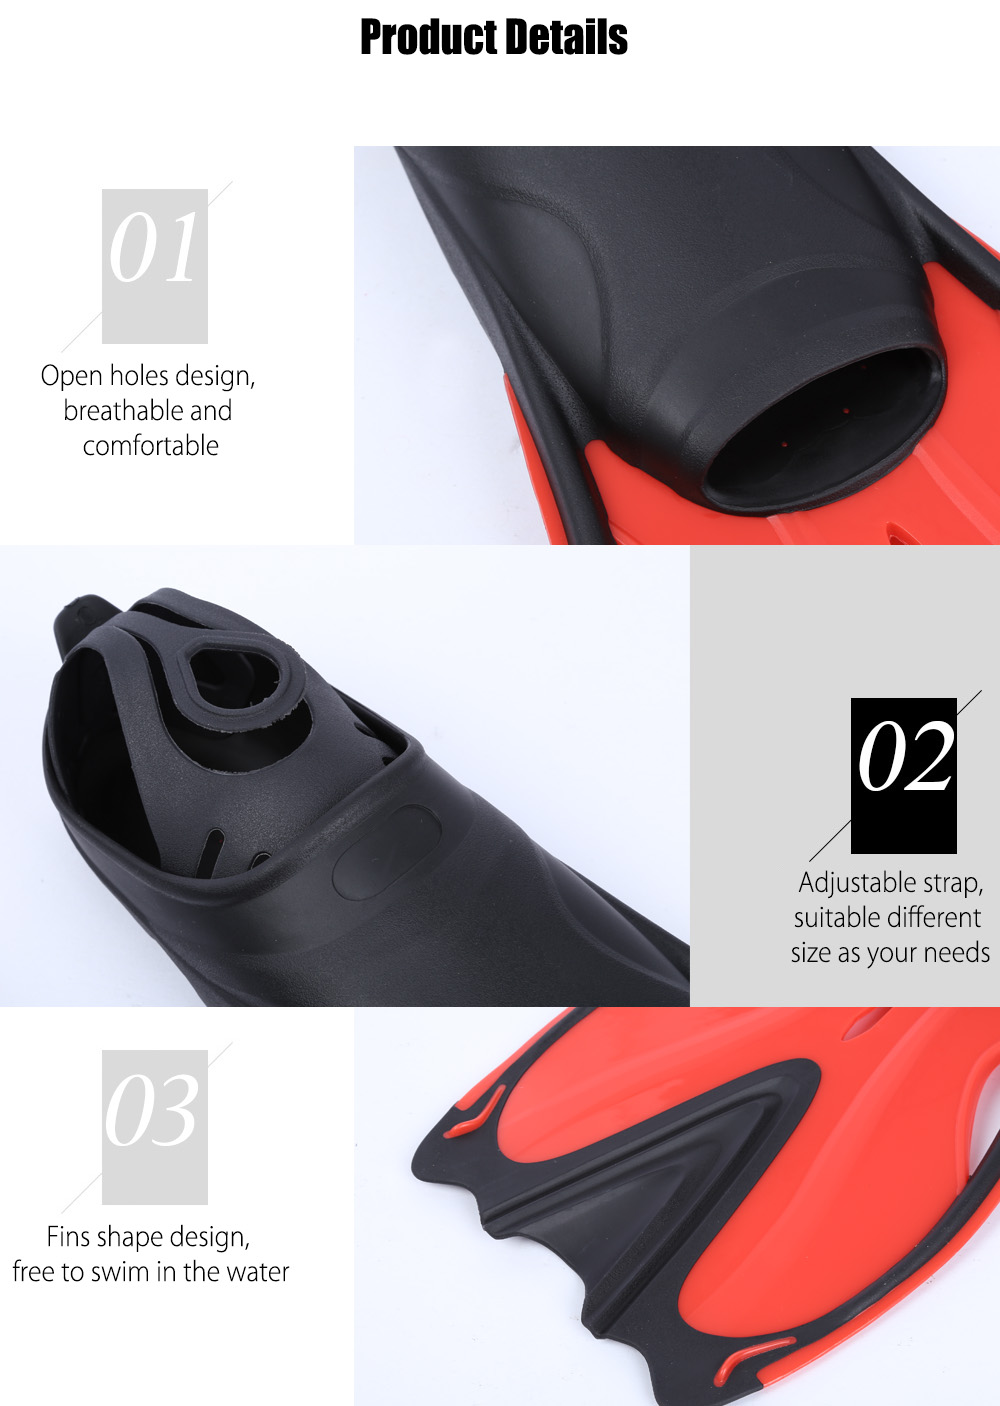 Paired Swimming Flippers Submersible Fins Snorkeling Shoes Diving Equipment